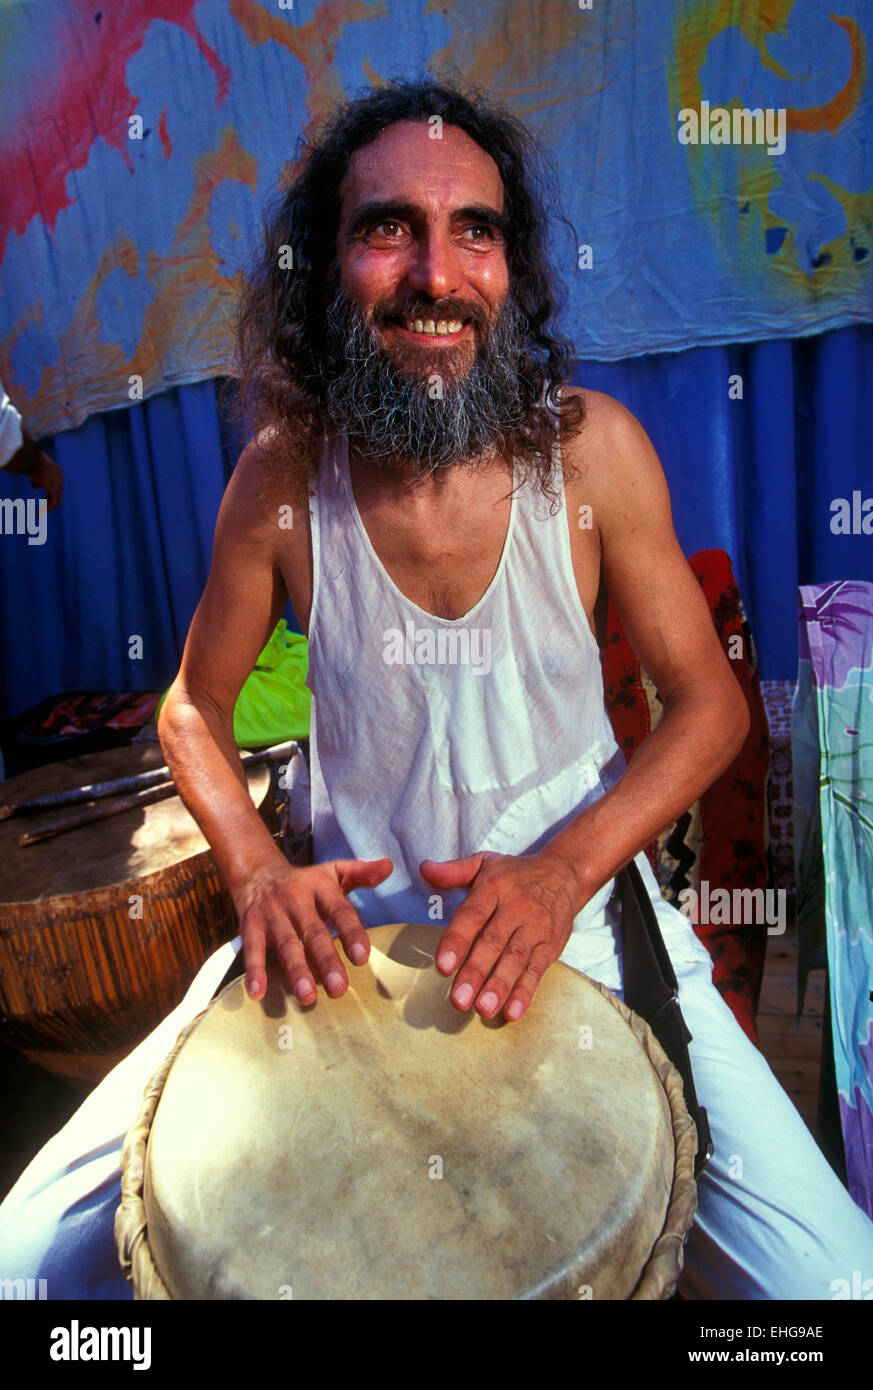 Bongo player in Ibiza in the 1990s. - Stock Image